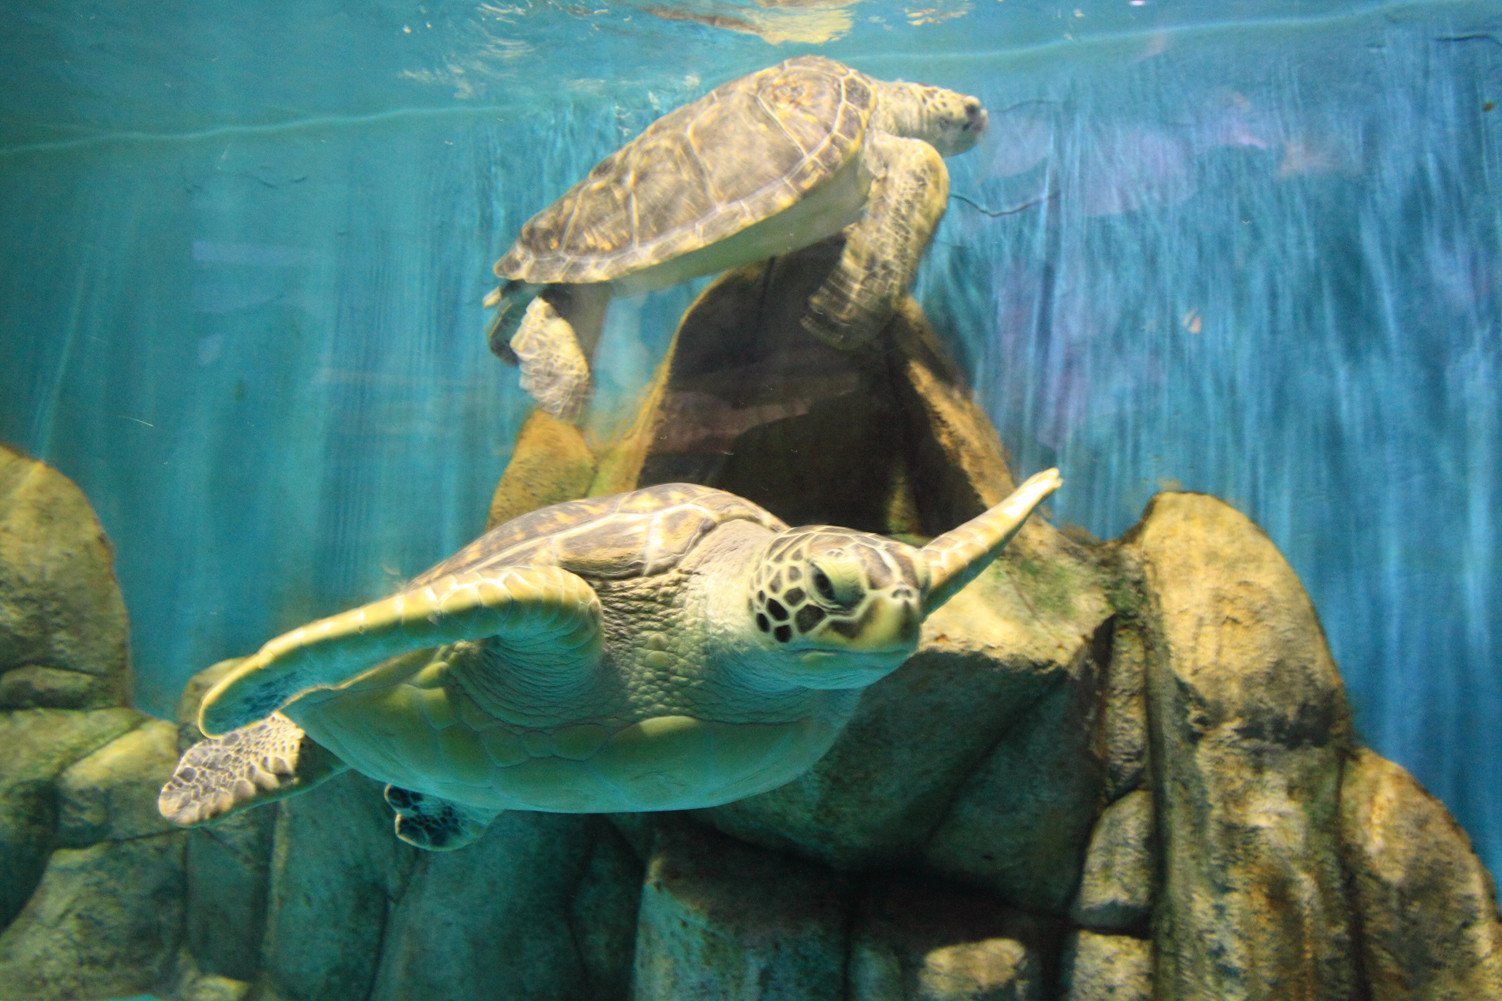 CHOIS Custom Films CF3062 Animal Tortoise Seaturtle Water Glass Window Frosted 4' W by 3' H by CHOIS